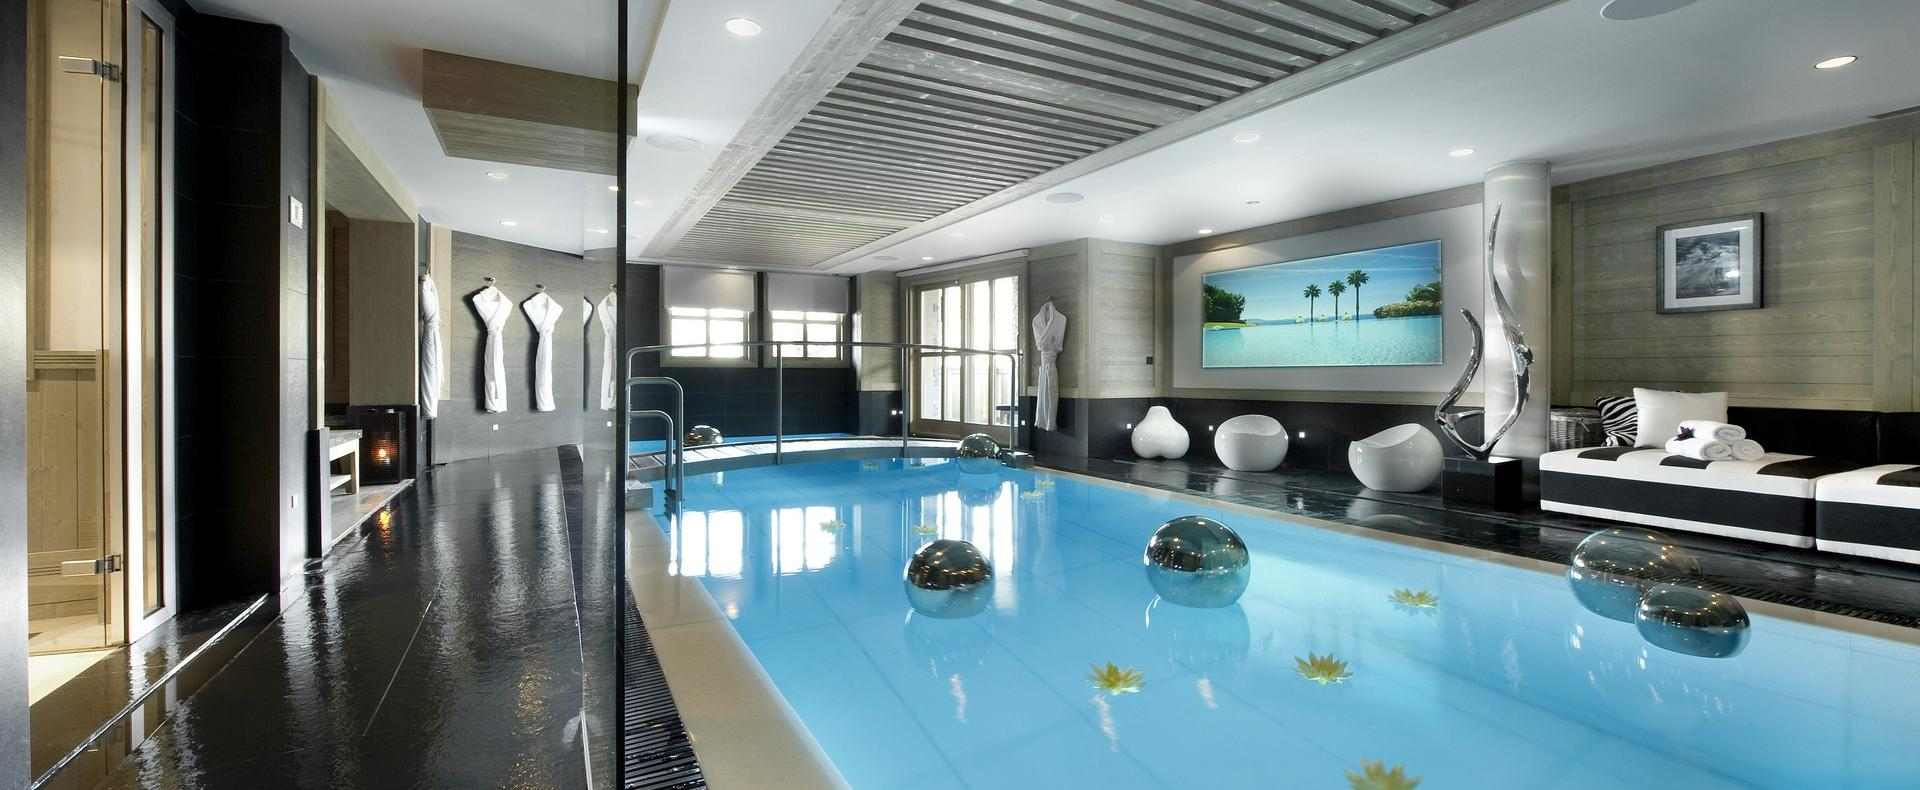 Chalet Le K2 Chalets , Ski Courchevel 1850, France, Ultimate Luxury ...